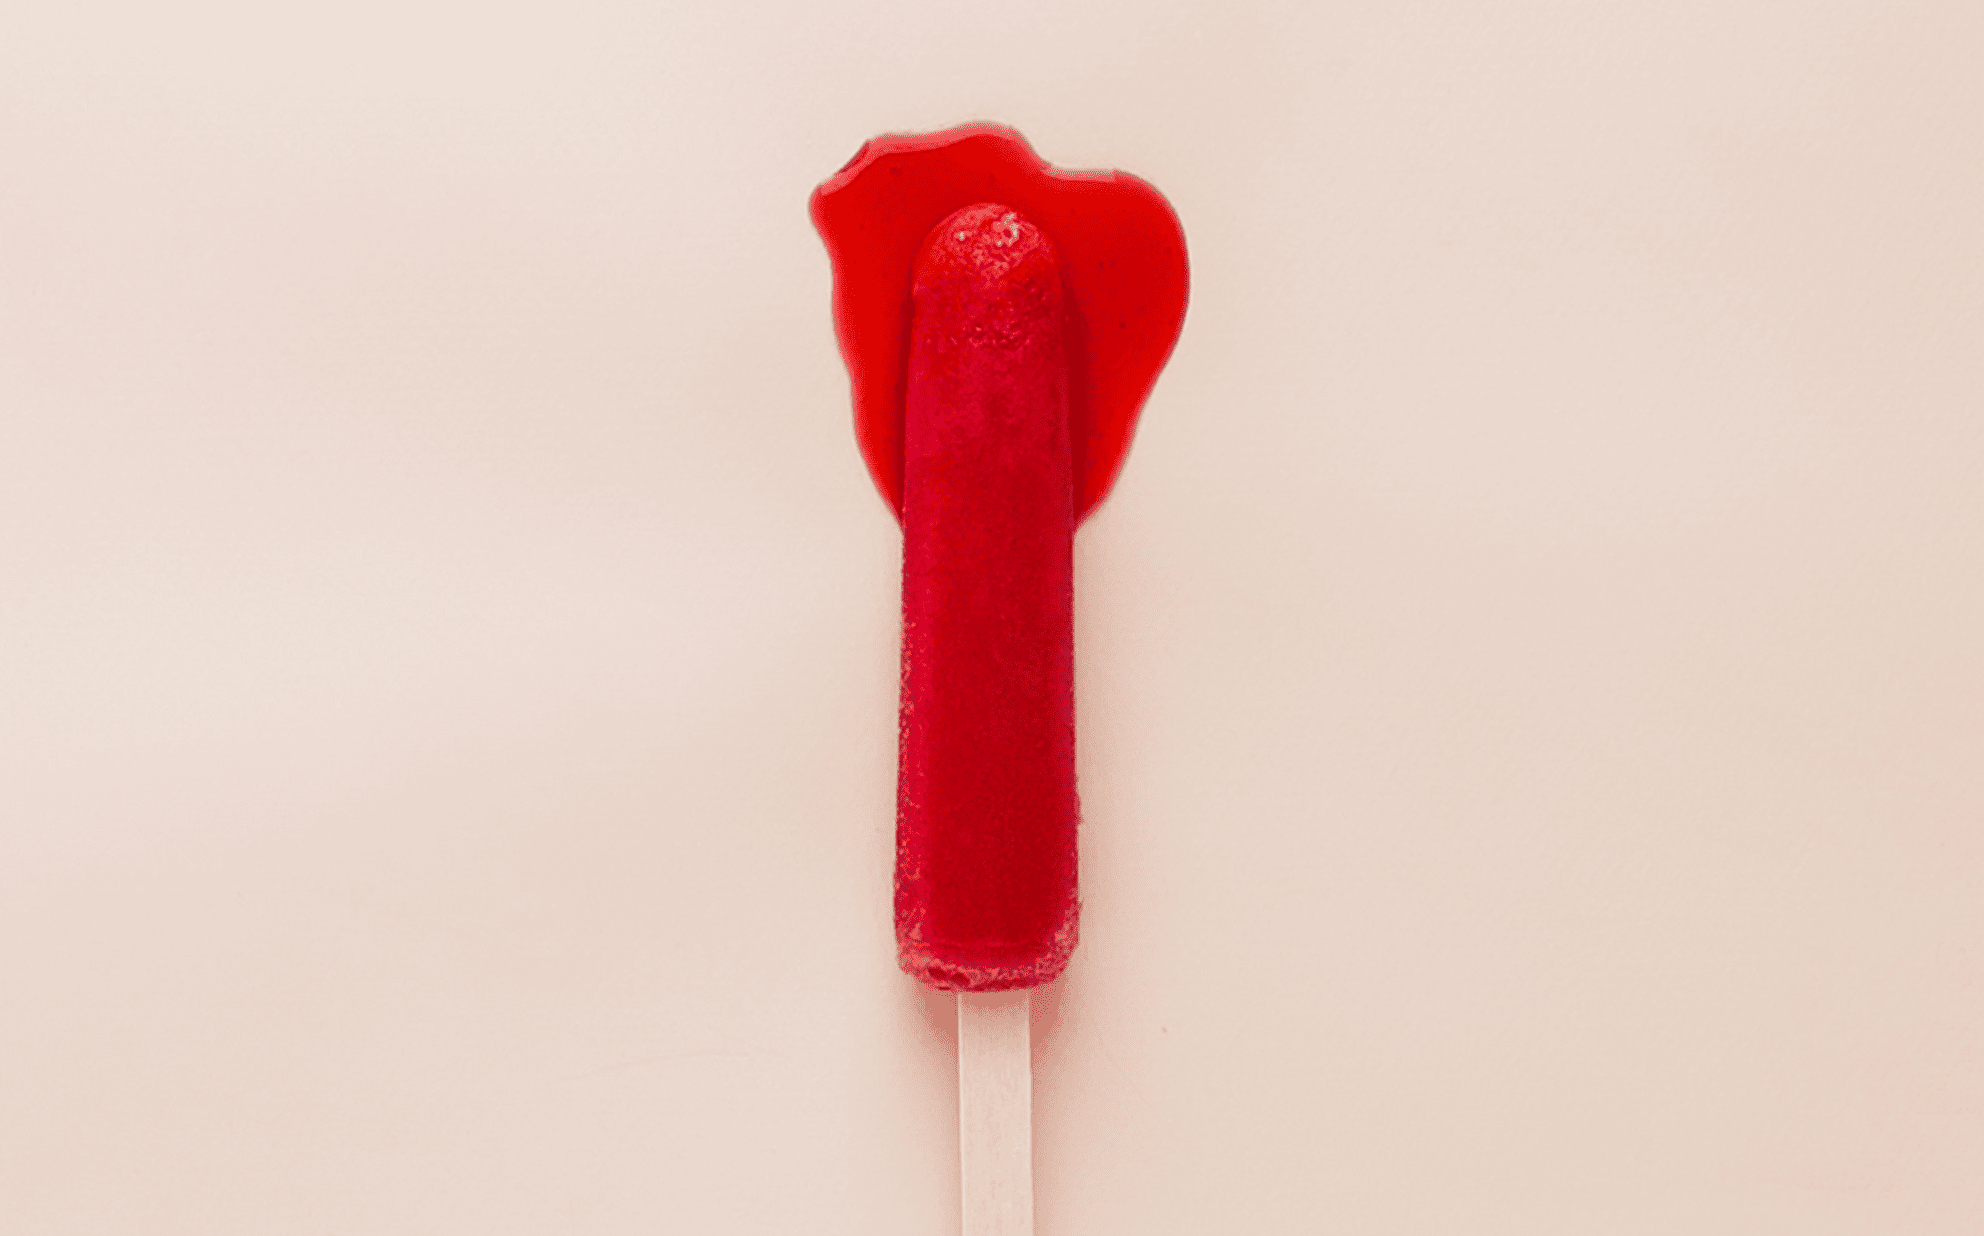 Image of red period lolly for Freda blog post